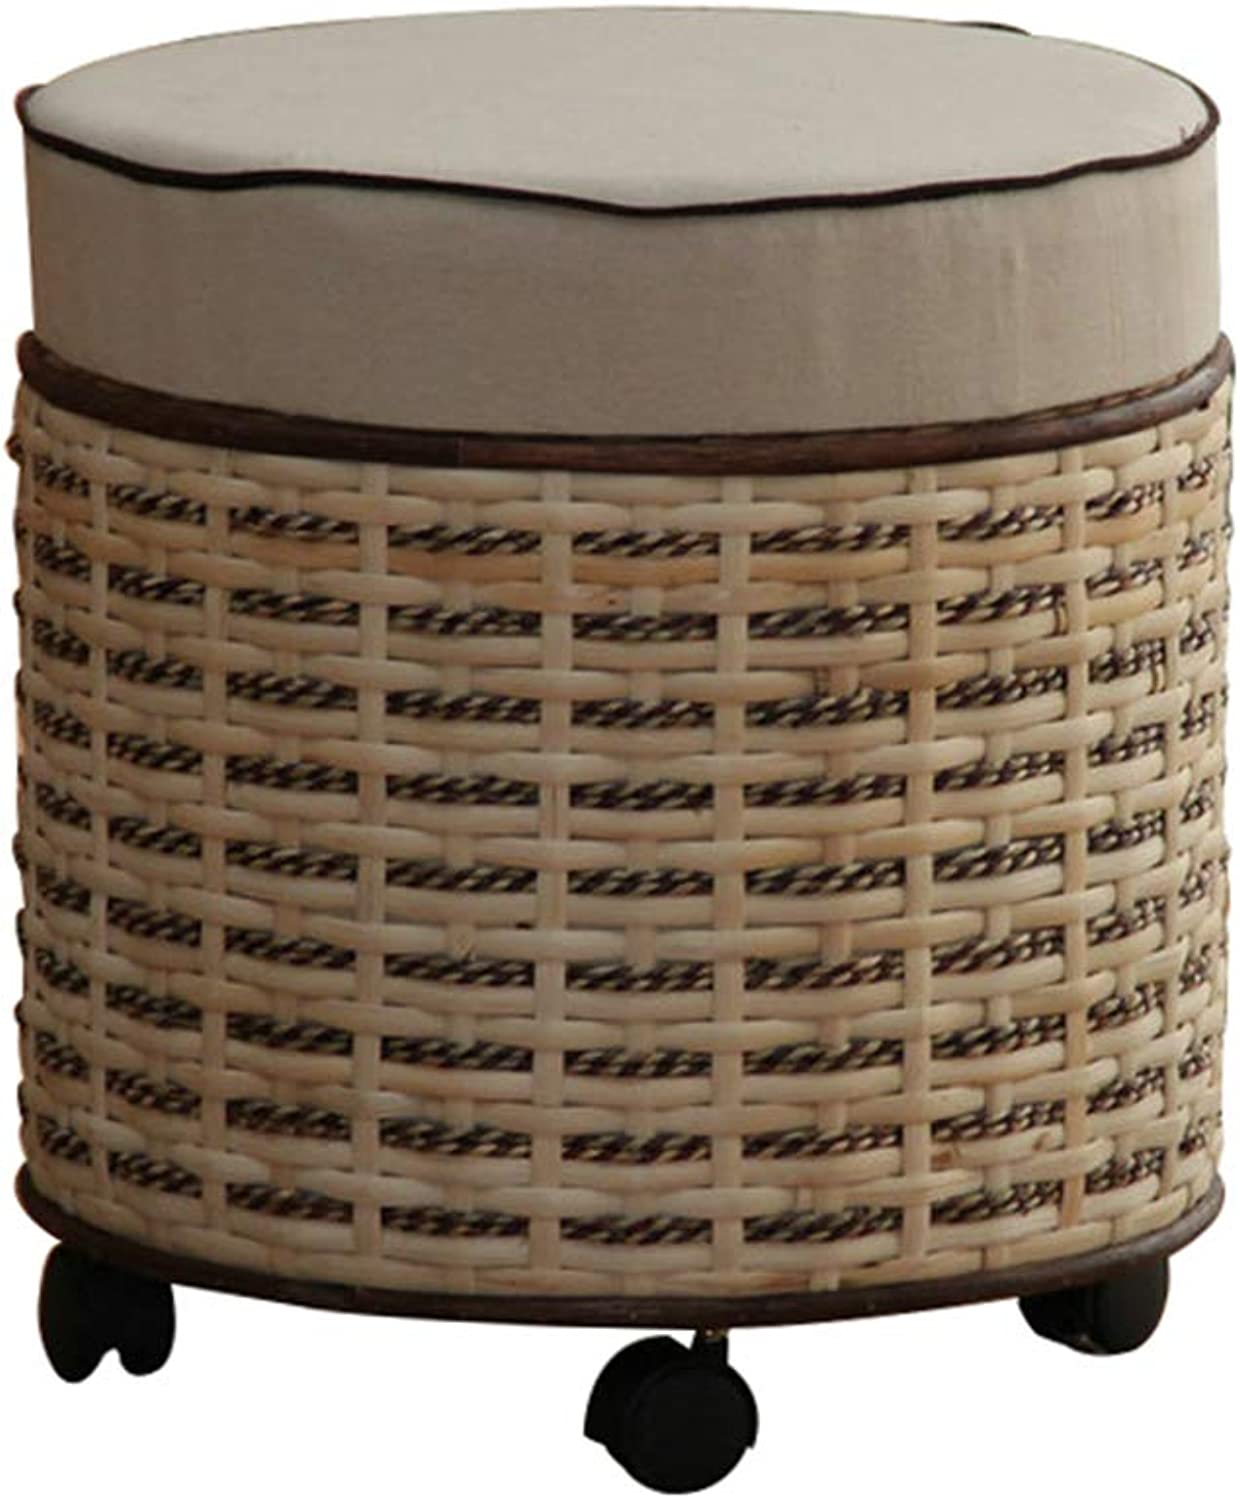 Storage Bench with Wheels, Round Large Capacity Storage Box with Lid - Home shoes Change Stool - Creative Rattan Storage Stool